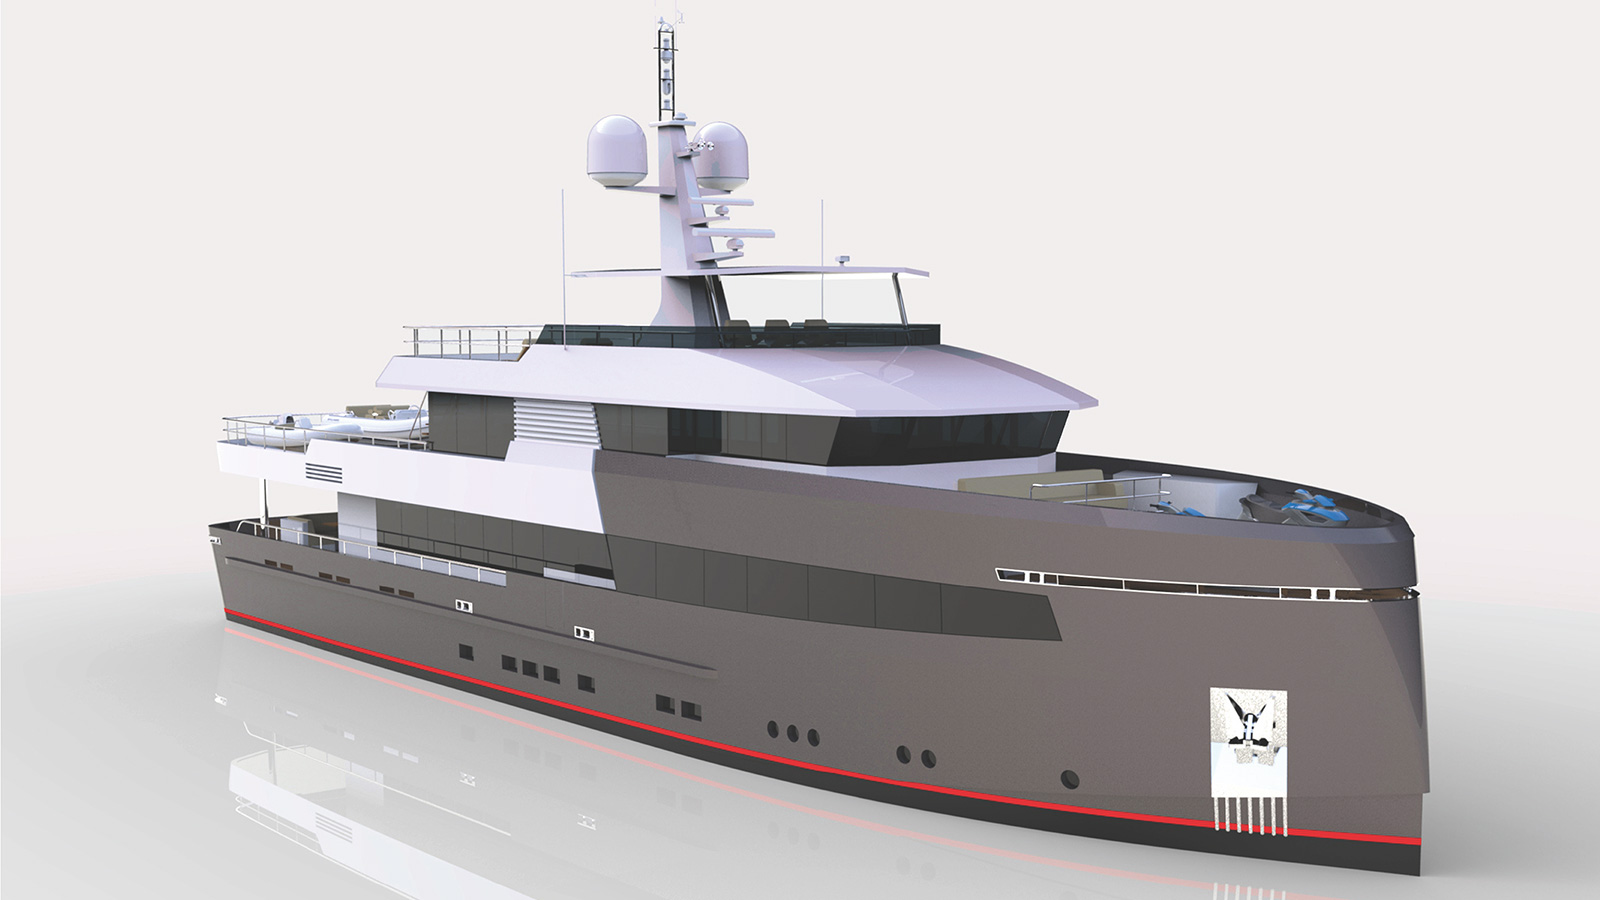 bow-view-of-the-inace-fhi-115-yacht-concept